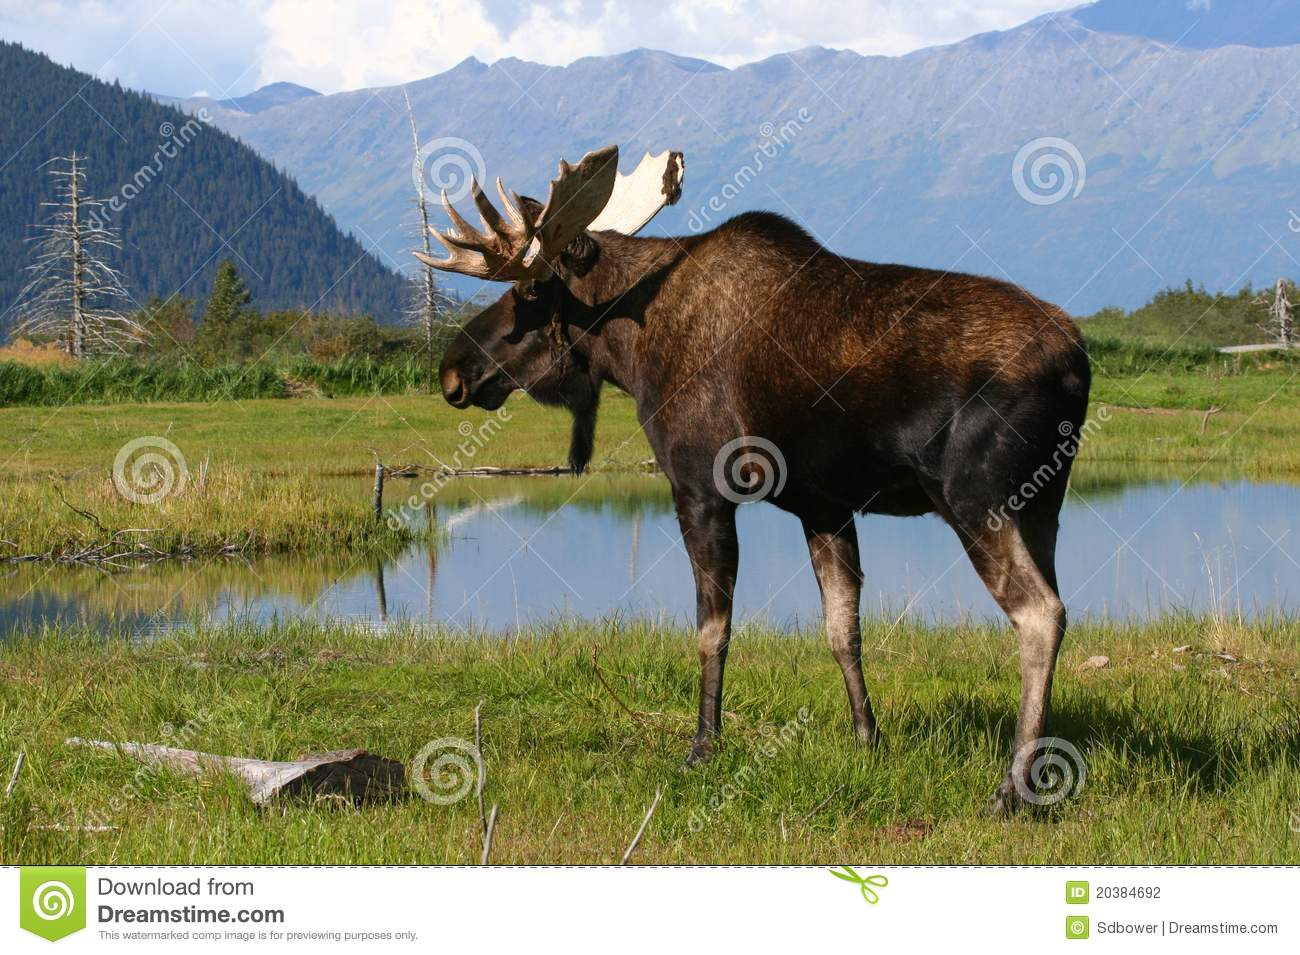 bull moose near an alaskan pond and mountains.